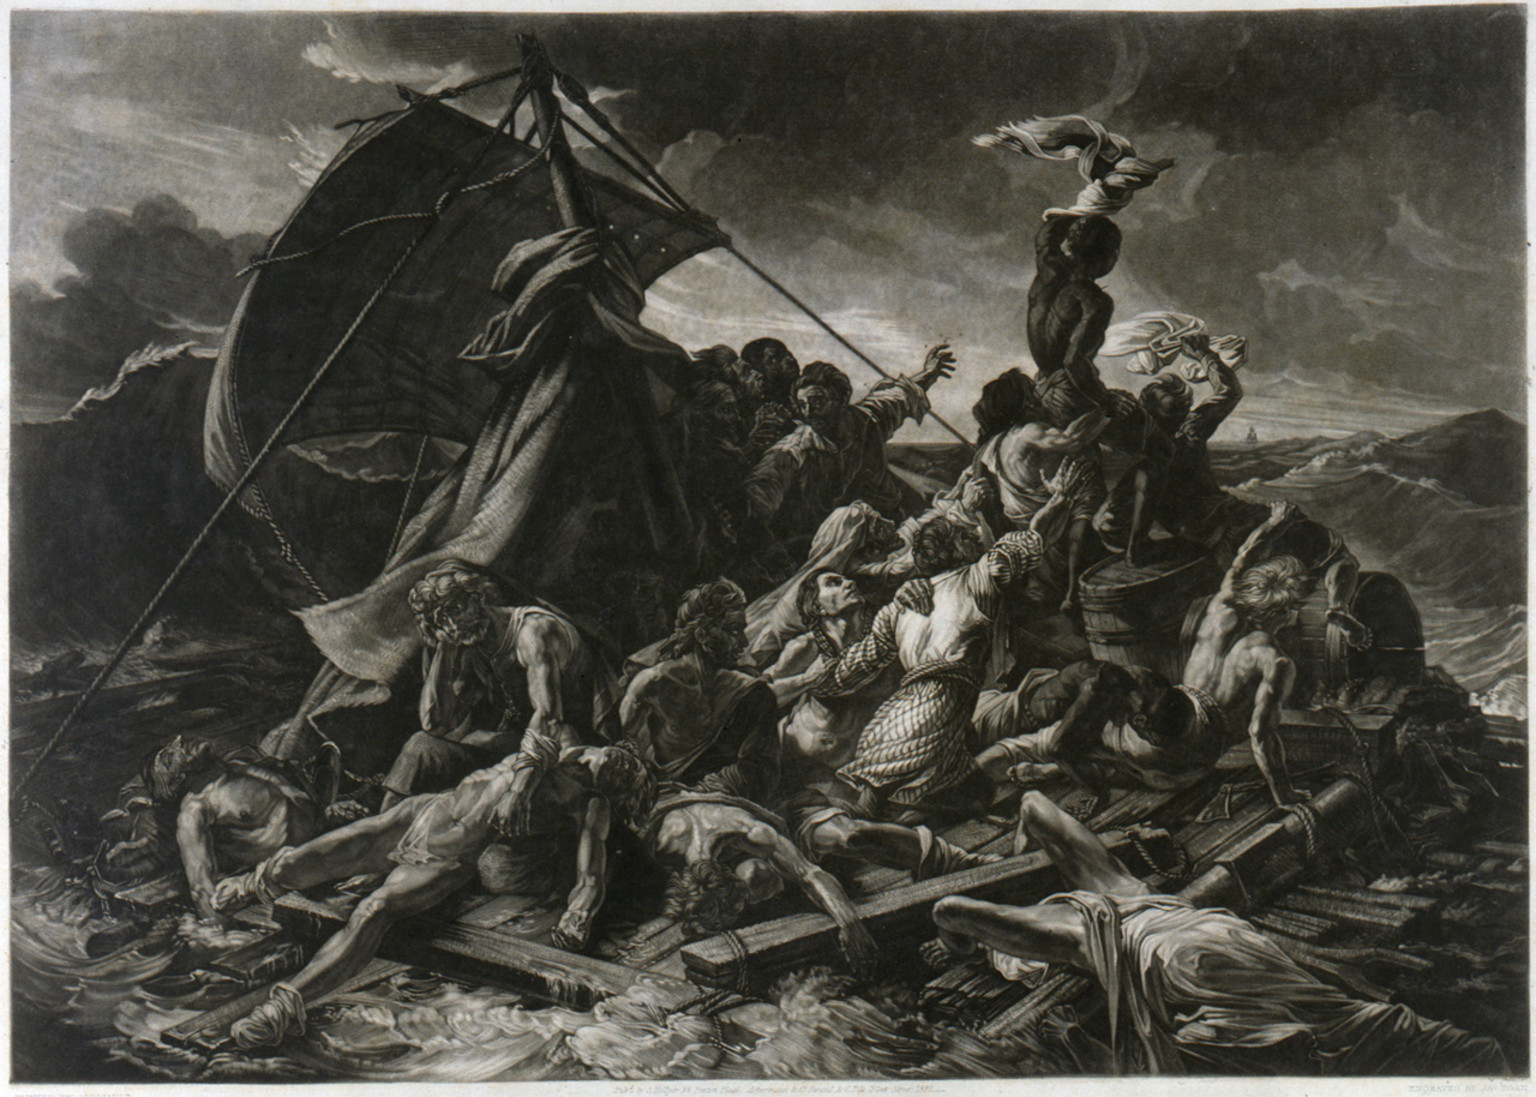 a brief history of theodore gericaults raft of the medusa painting The raft of the medusa—a major work in french 19th-century painting—is generally regarded as an icon of romanticism it depicts an event whose human and political aspects greatly interested géricault: the wreck of a french frigate off the coast of senegal in 1816, with over 150 soldiers on board.